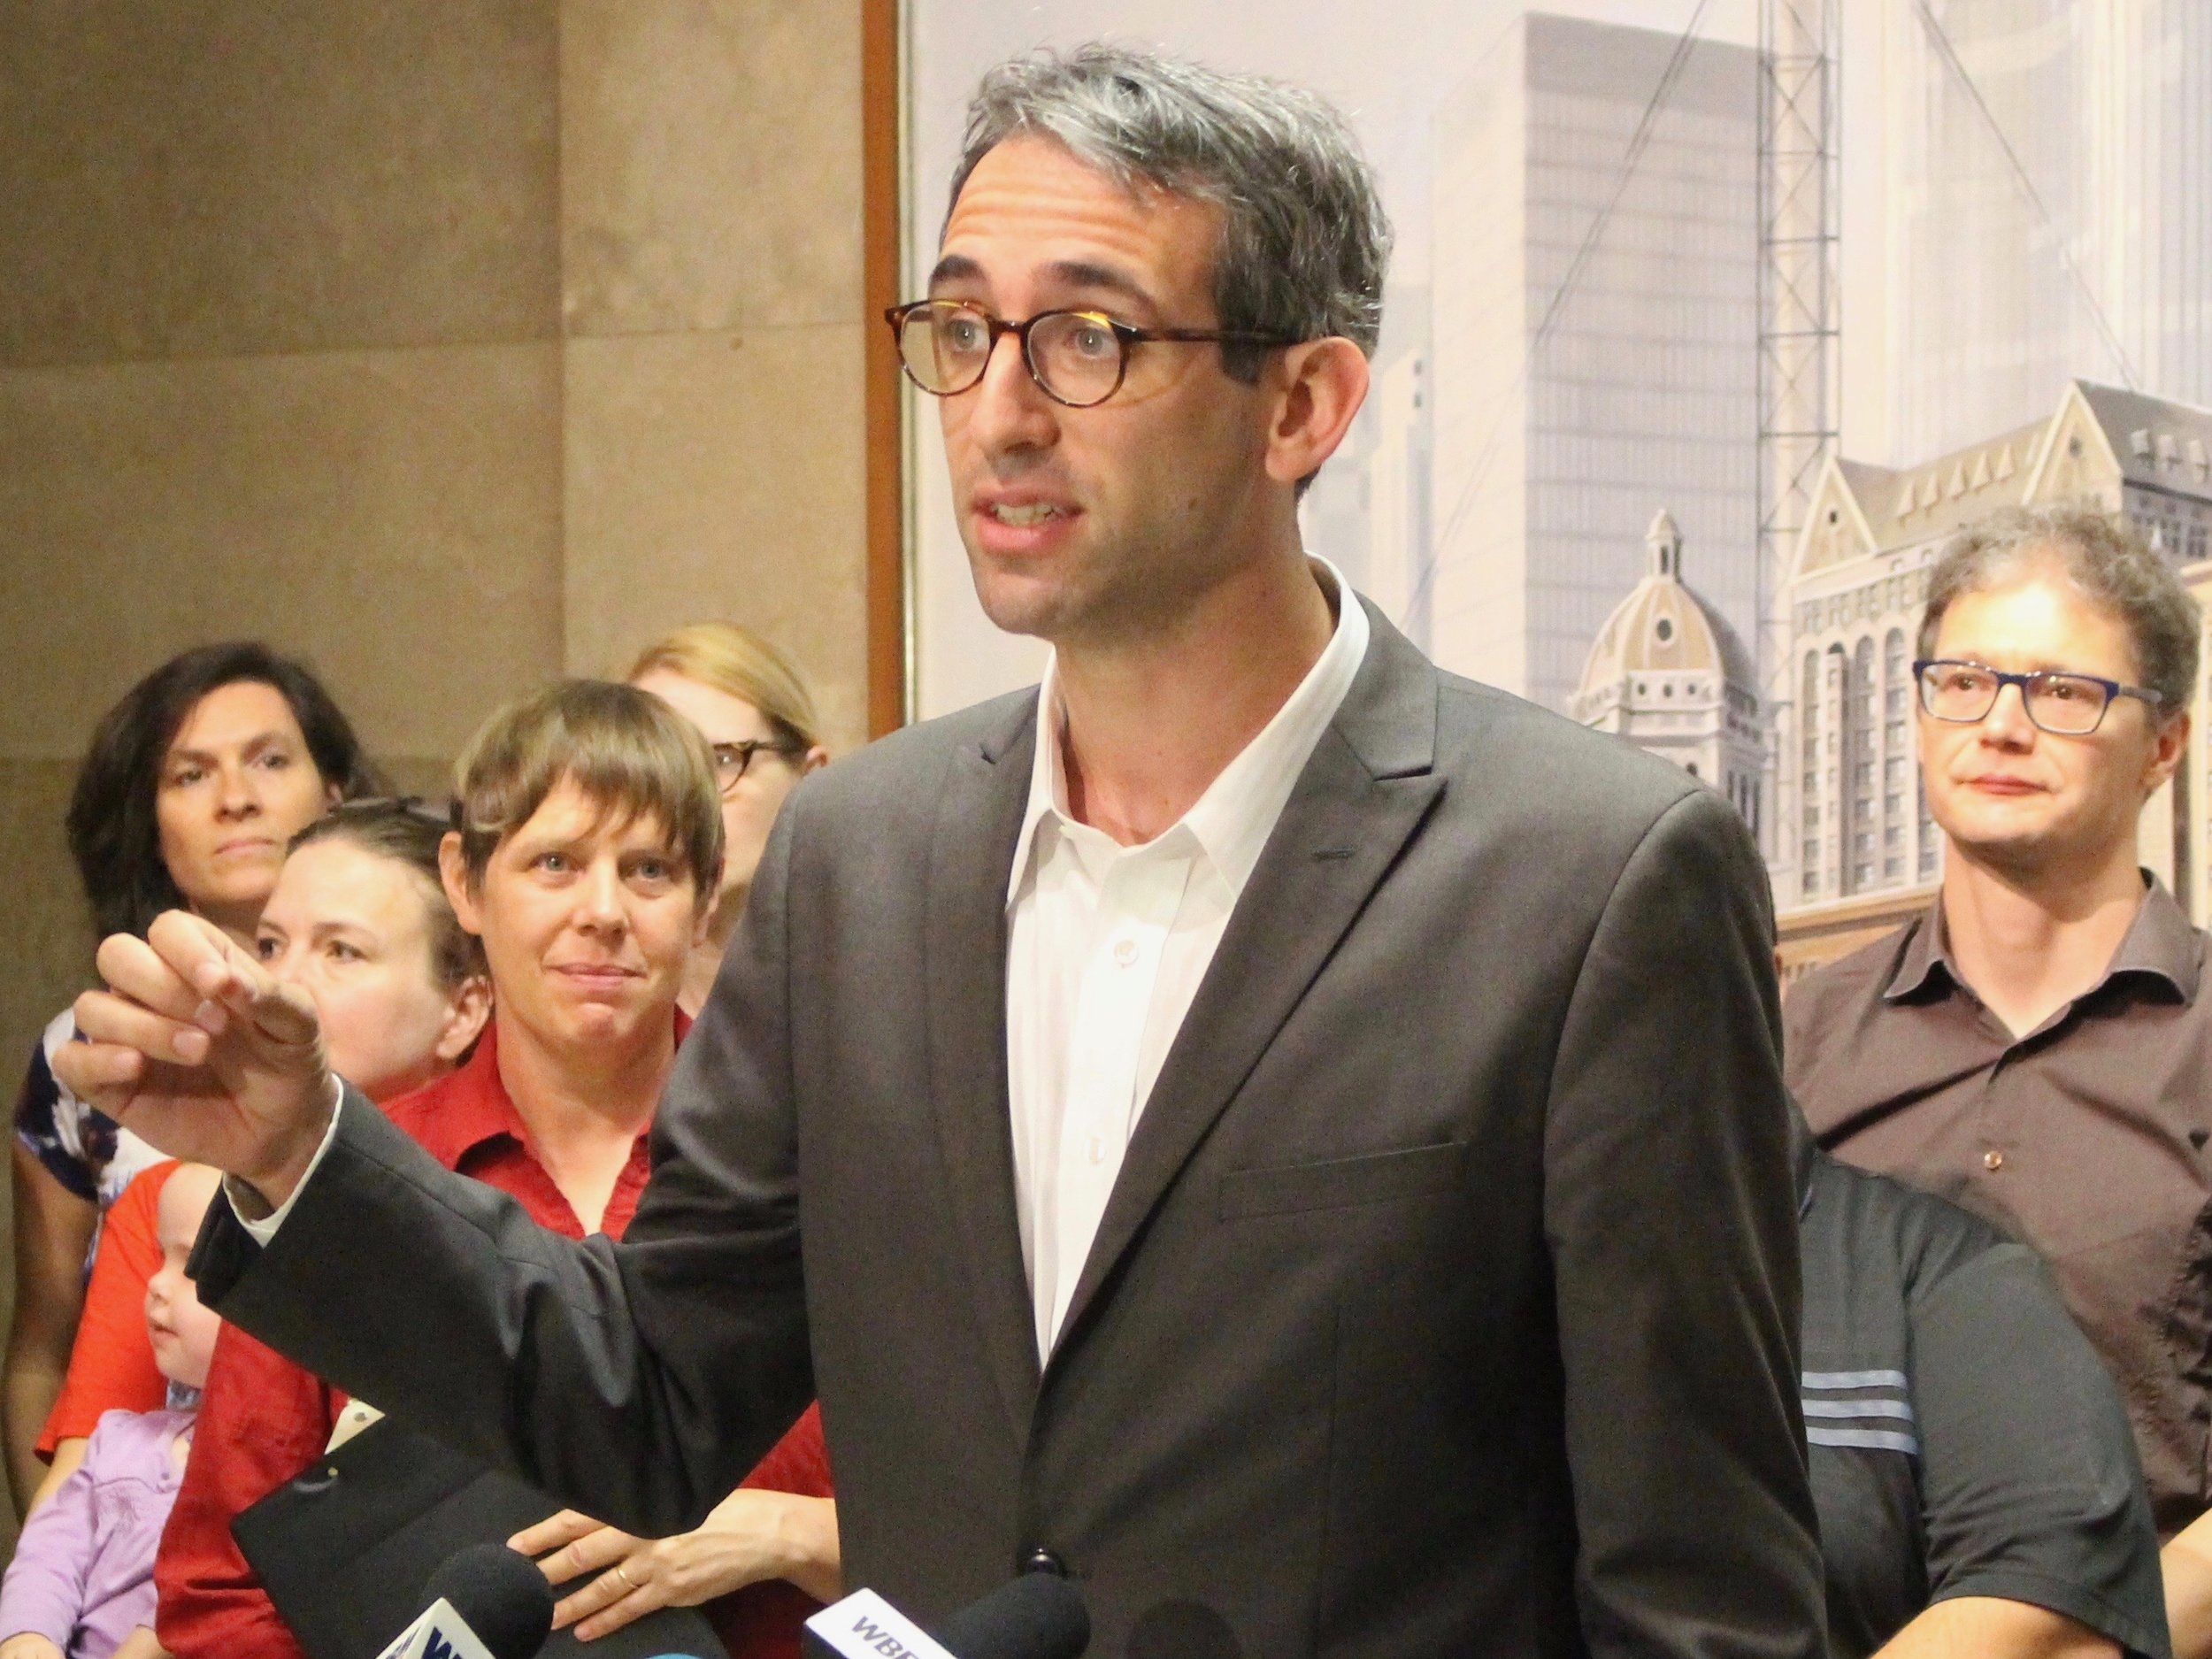 State Rep. Will Guzzardi is among the leaders of a group trying to form a Progressive Caucus in the House. (One Illinois/Ted Cox)